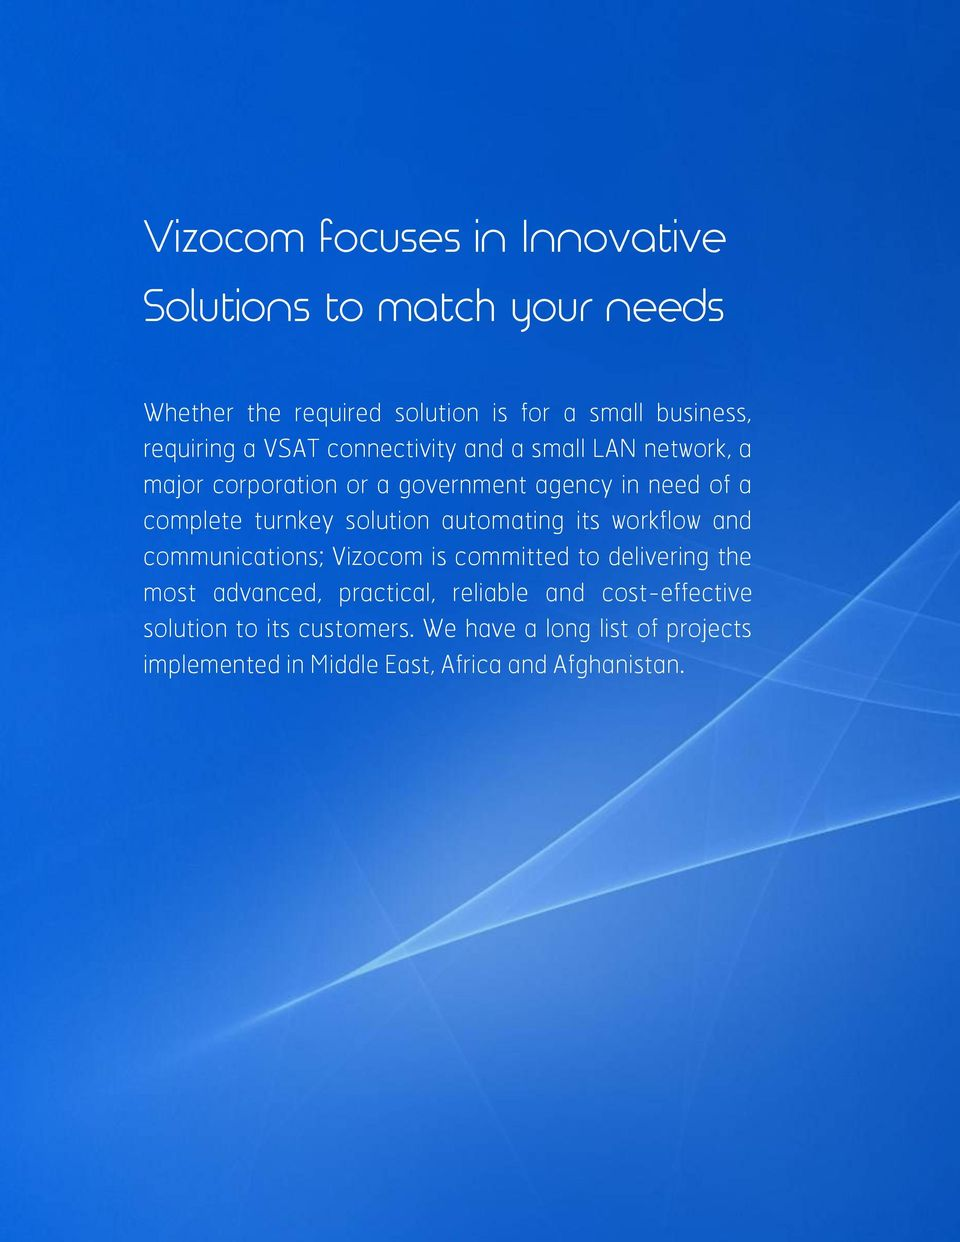 solution automating its workflow and communications; Vizocom is committed to delivering the most advanced, practical,